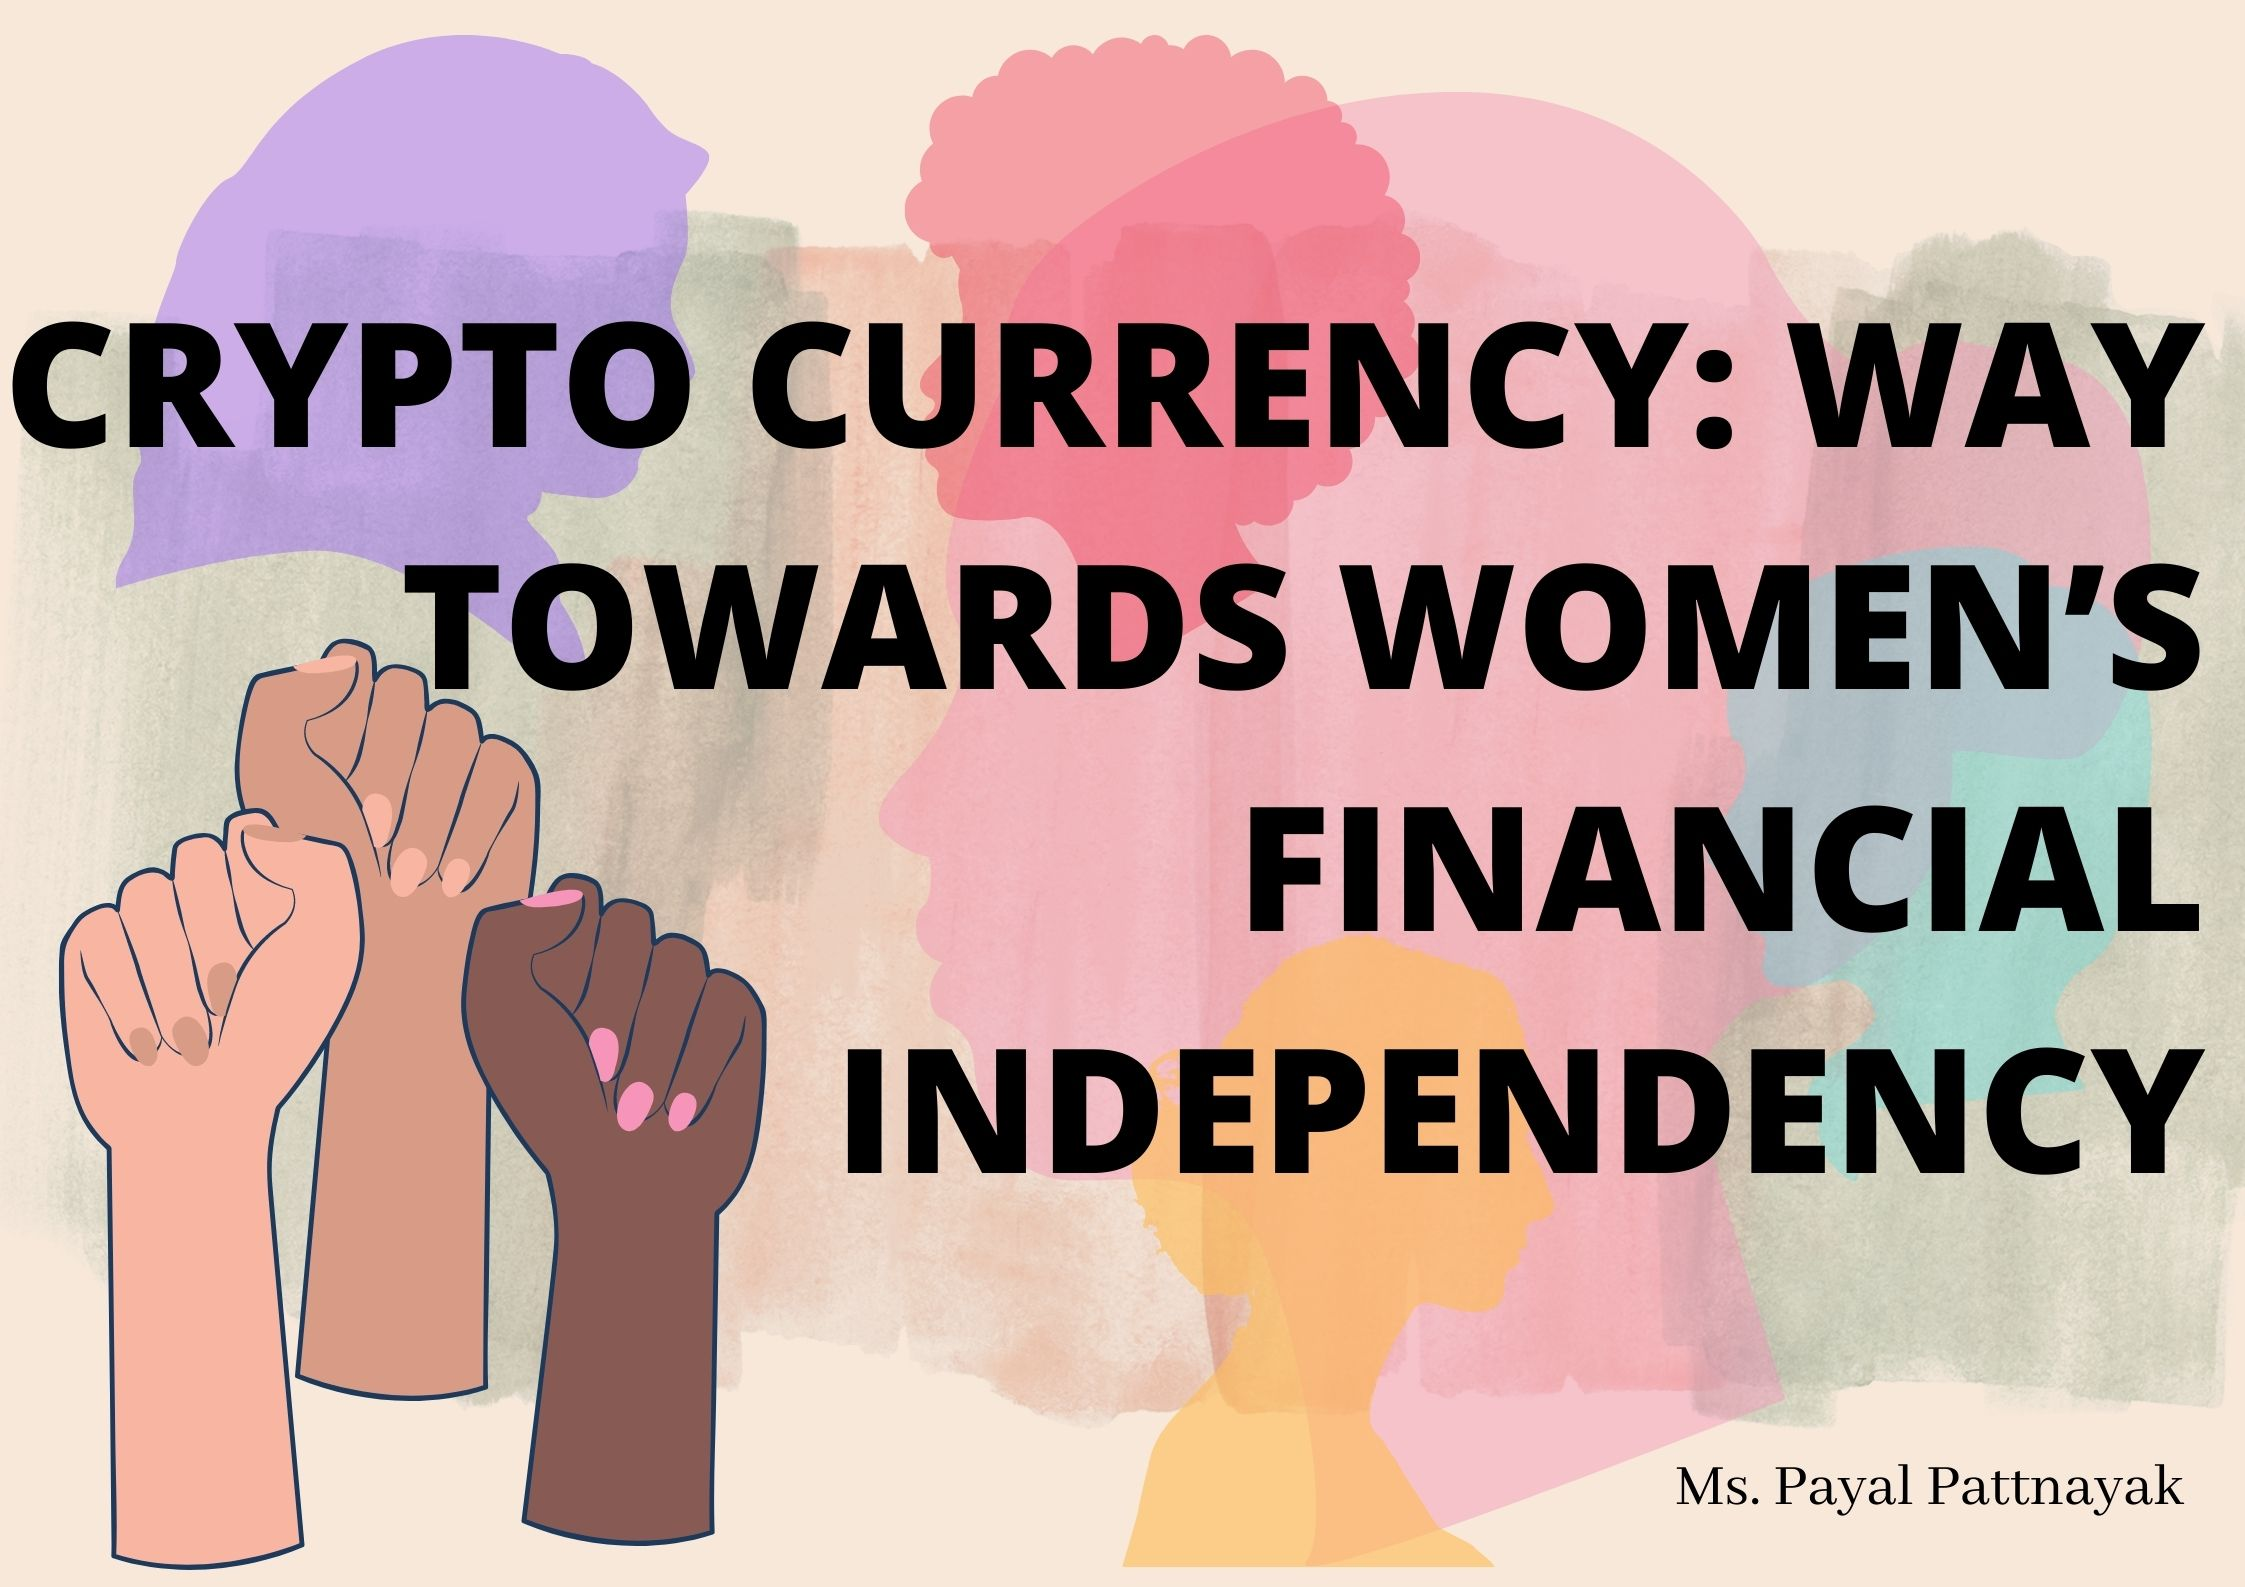 CRYPTO CURRENCY: WAY TOWARDS WOMEN'S FINANCIAL INDEPENDENCY